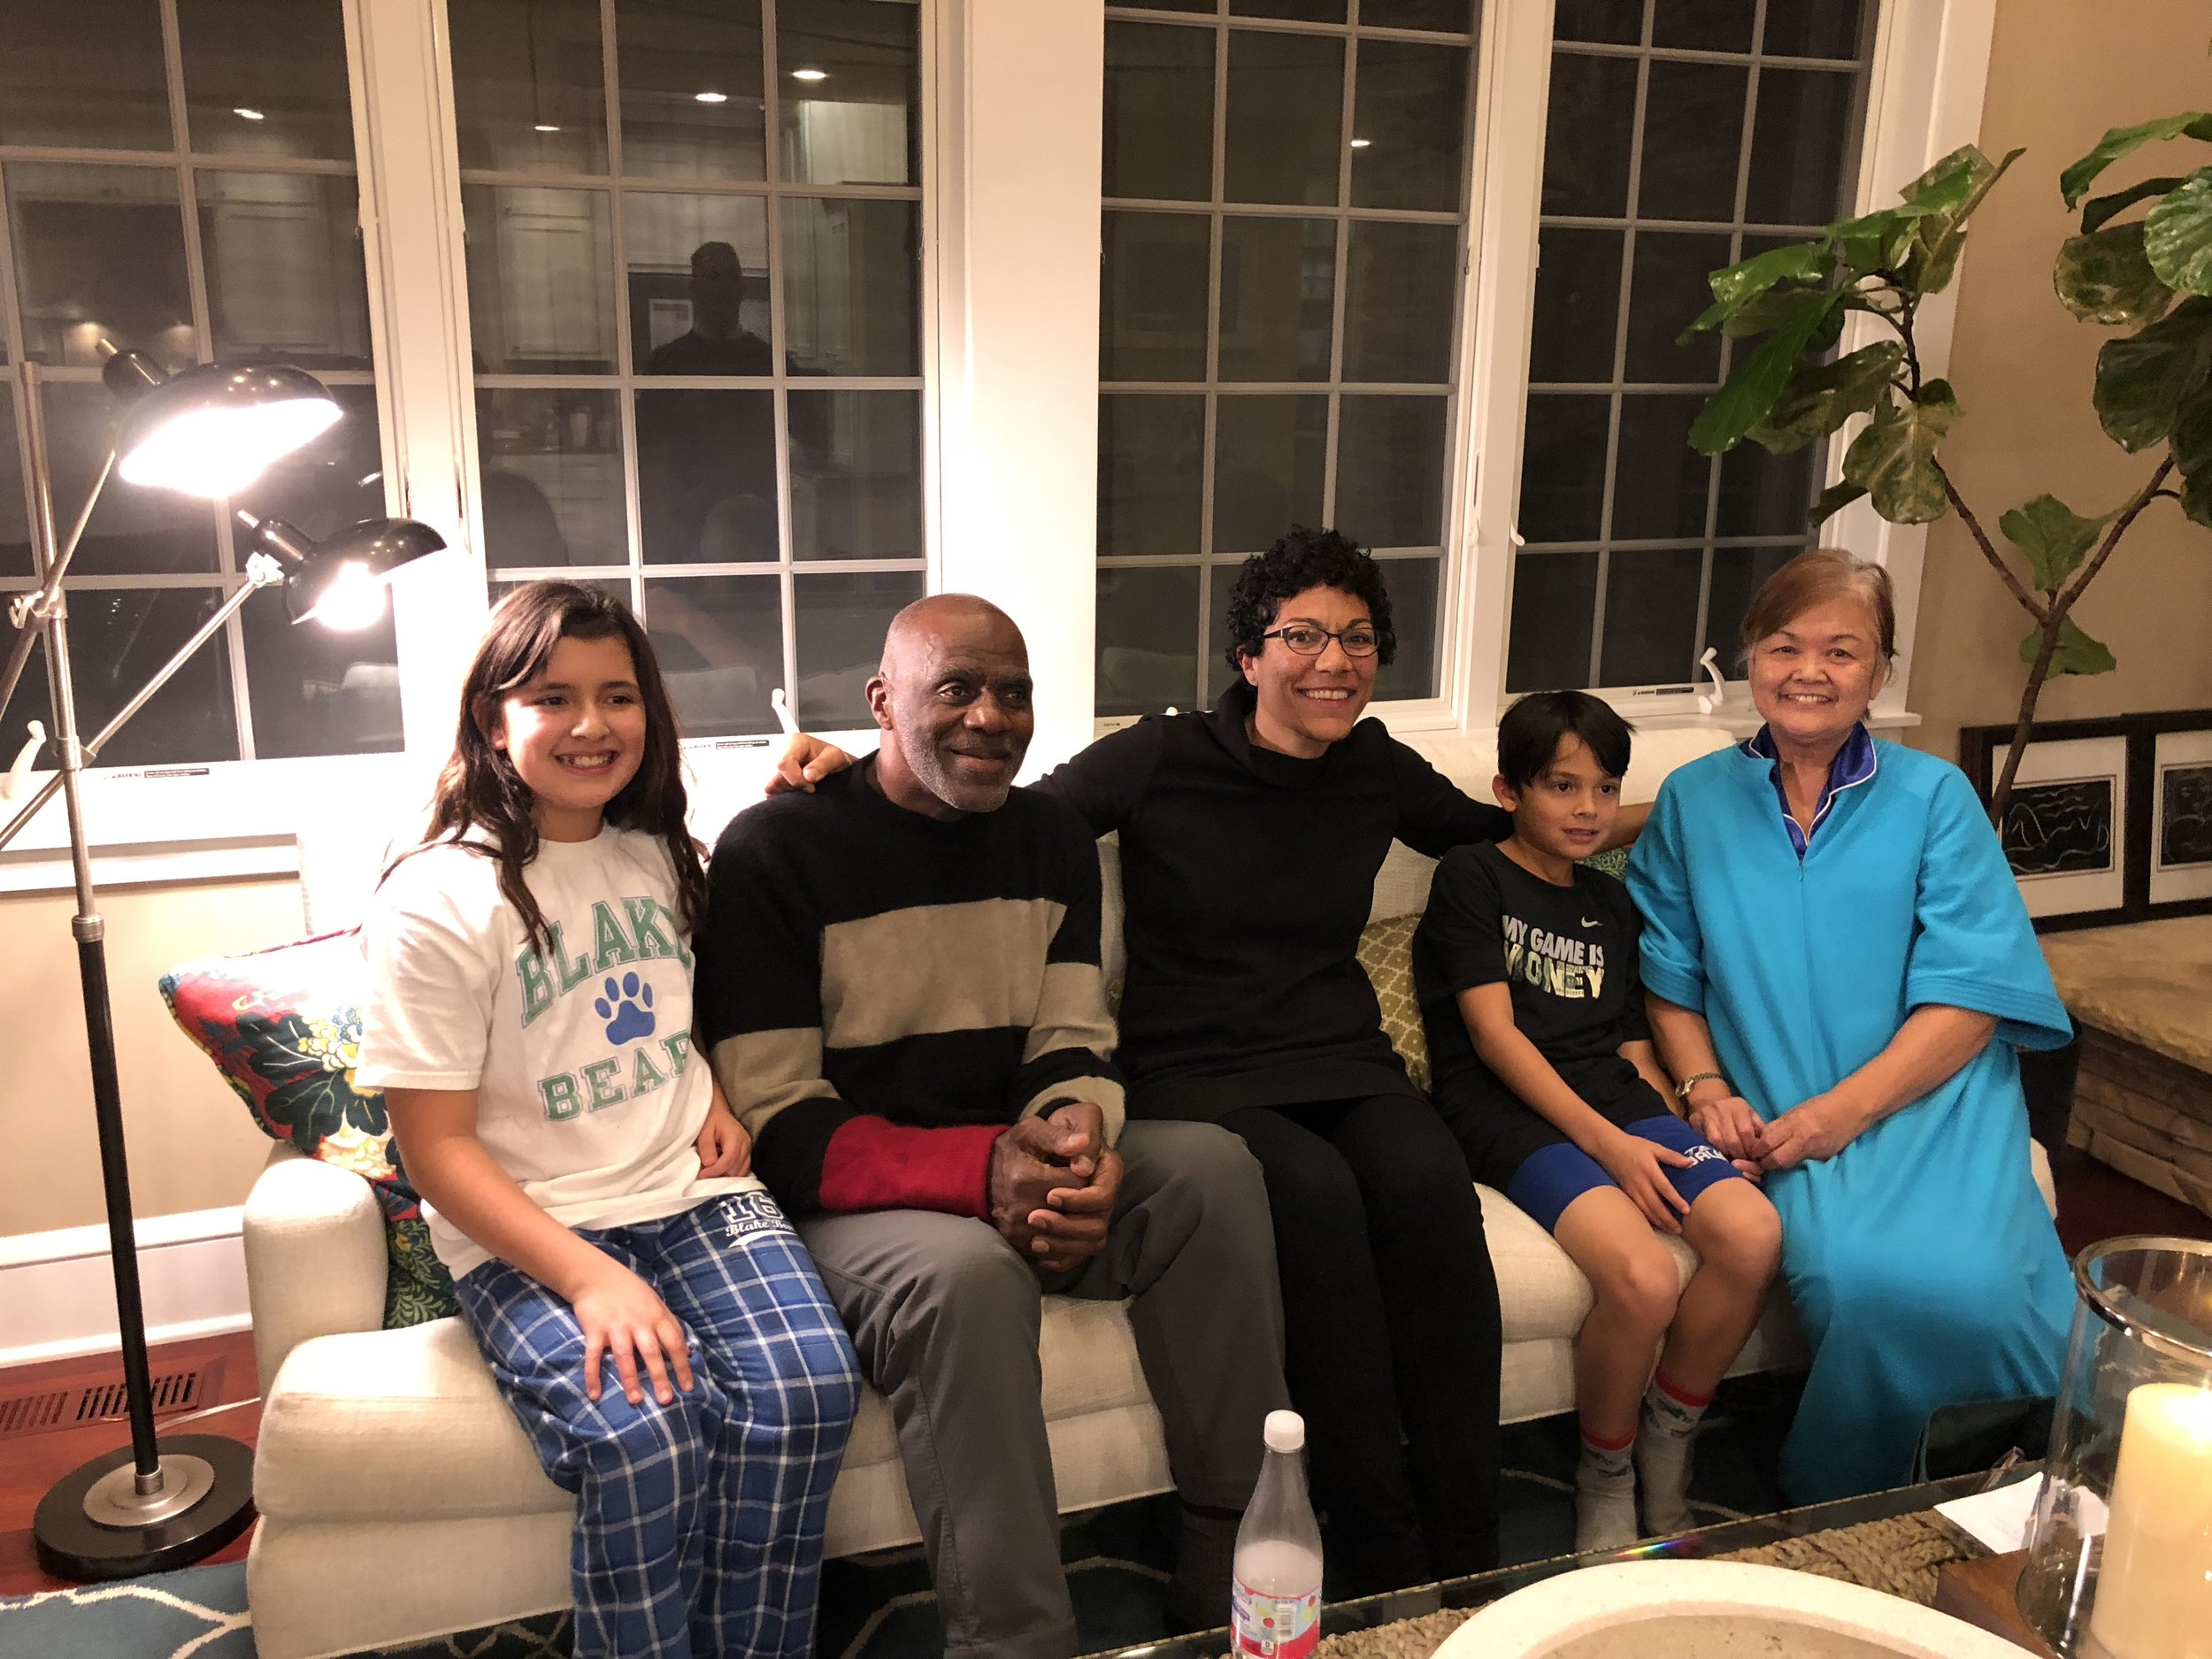 Bedtime Stories with Alan Page and Kamie Page. Most of the adults were there because they are fans of Alan Page. I was more honored to have Kamie Page sitting in my living room! She's the real star of the family!!